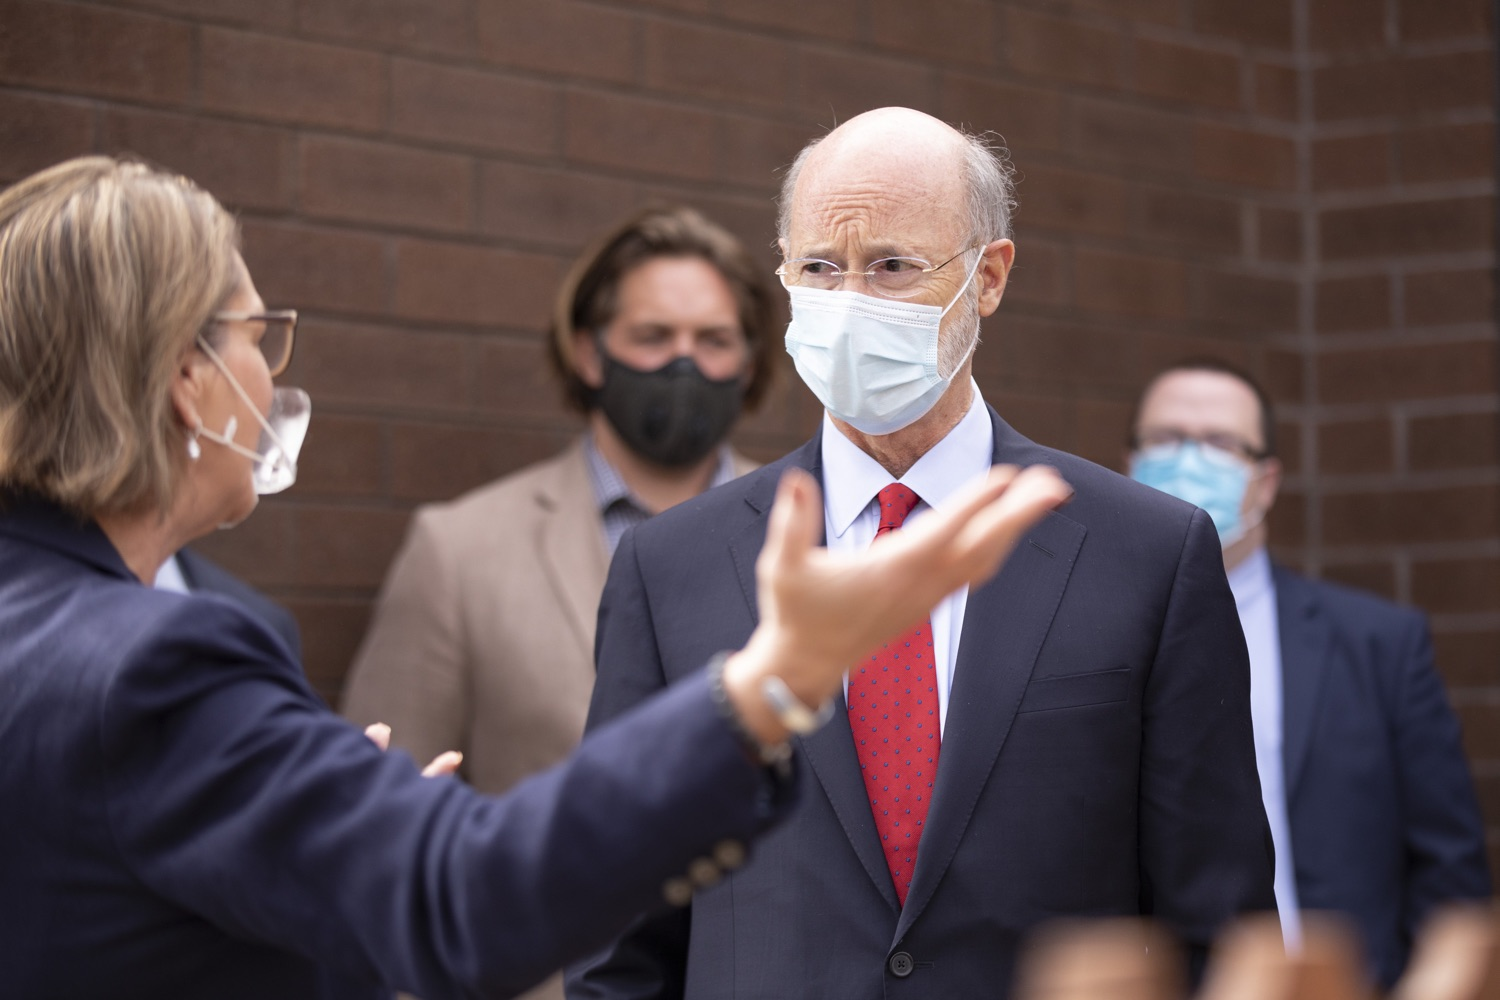 "<a href=""https://filesource.wostreaming.net/commonwealthofpa/photo/18310_gov_adult_use_cannabis_dz_014.jpg"" target=""_blank"">⇣ Download Photo<br></a>Governor Tom Wolf touring The Mountain Center.Governor Tom Wolf visited The Mountain Center in Tobyhanna, Monroe County today to talk about the economic growth potential and restorative justice benefits of legalizing adult-use cannabis, something the state General Assembly has not yet done despite multiple requests from the governor and Lieutenant Governor John Fetterman to take up legislation this fall.  Tobyhanna, PA  October 13, 2020"